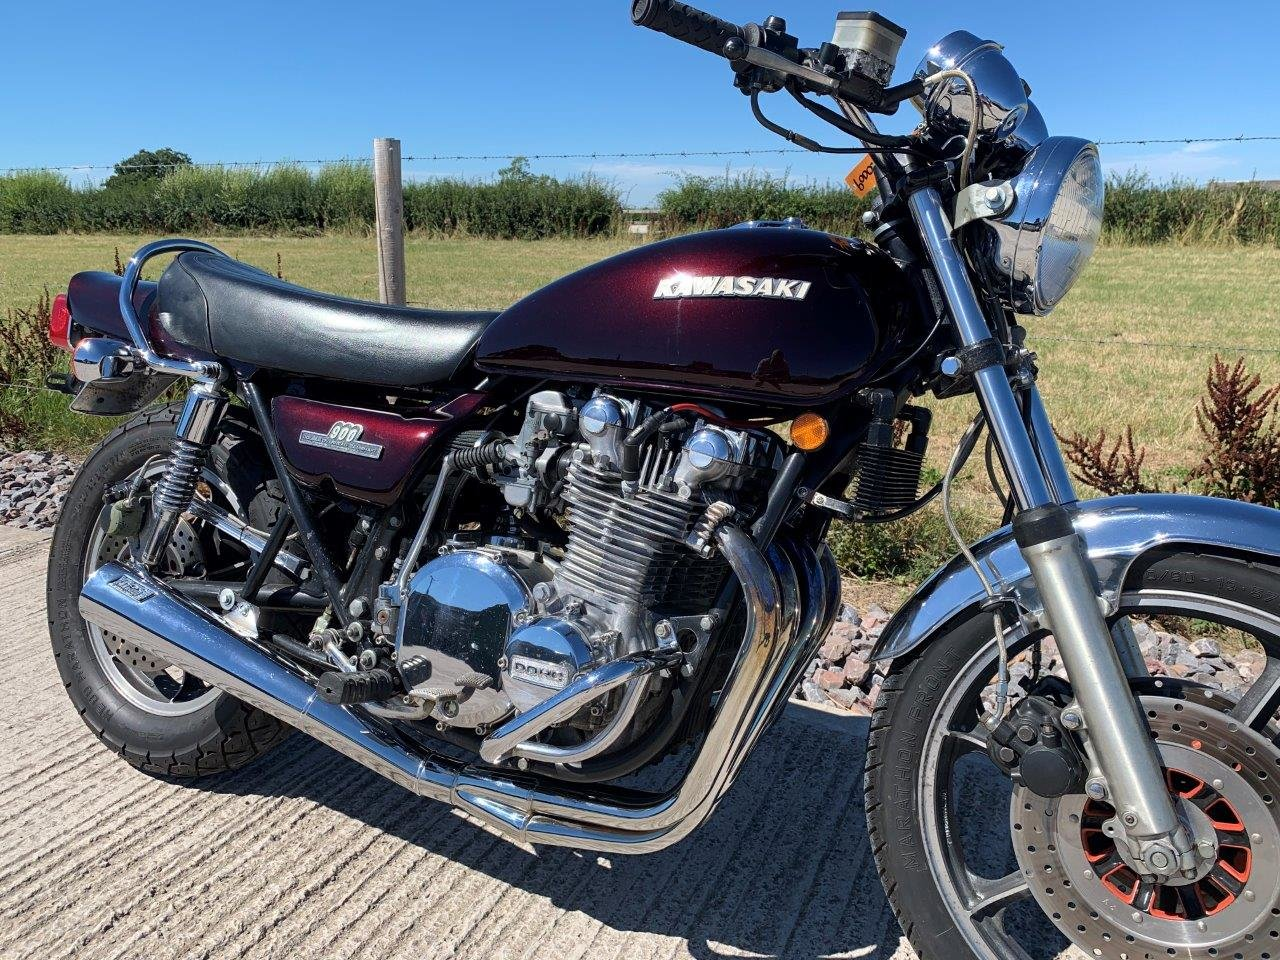 1978 Kawasaki Z1000 For Sale (picture 1 of 6)